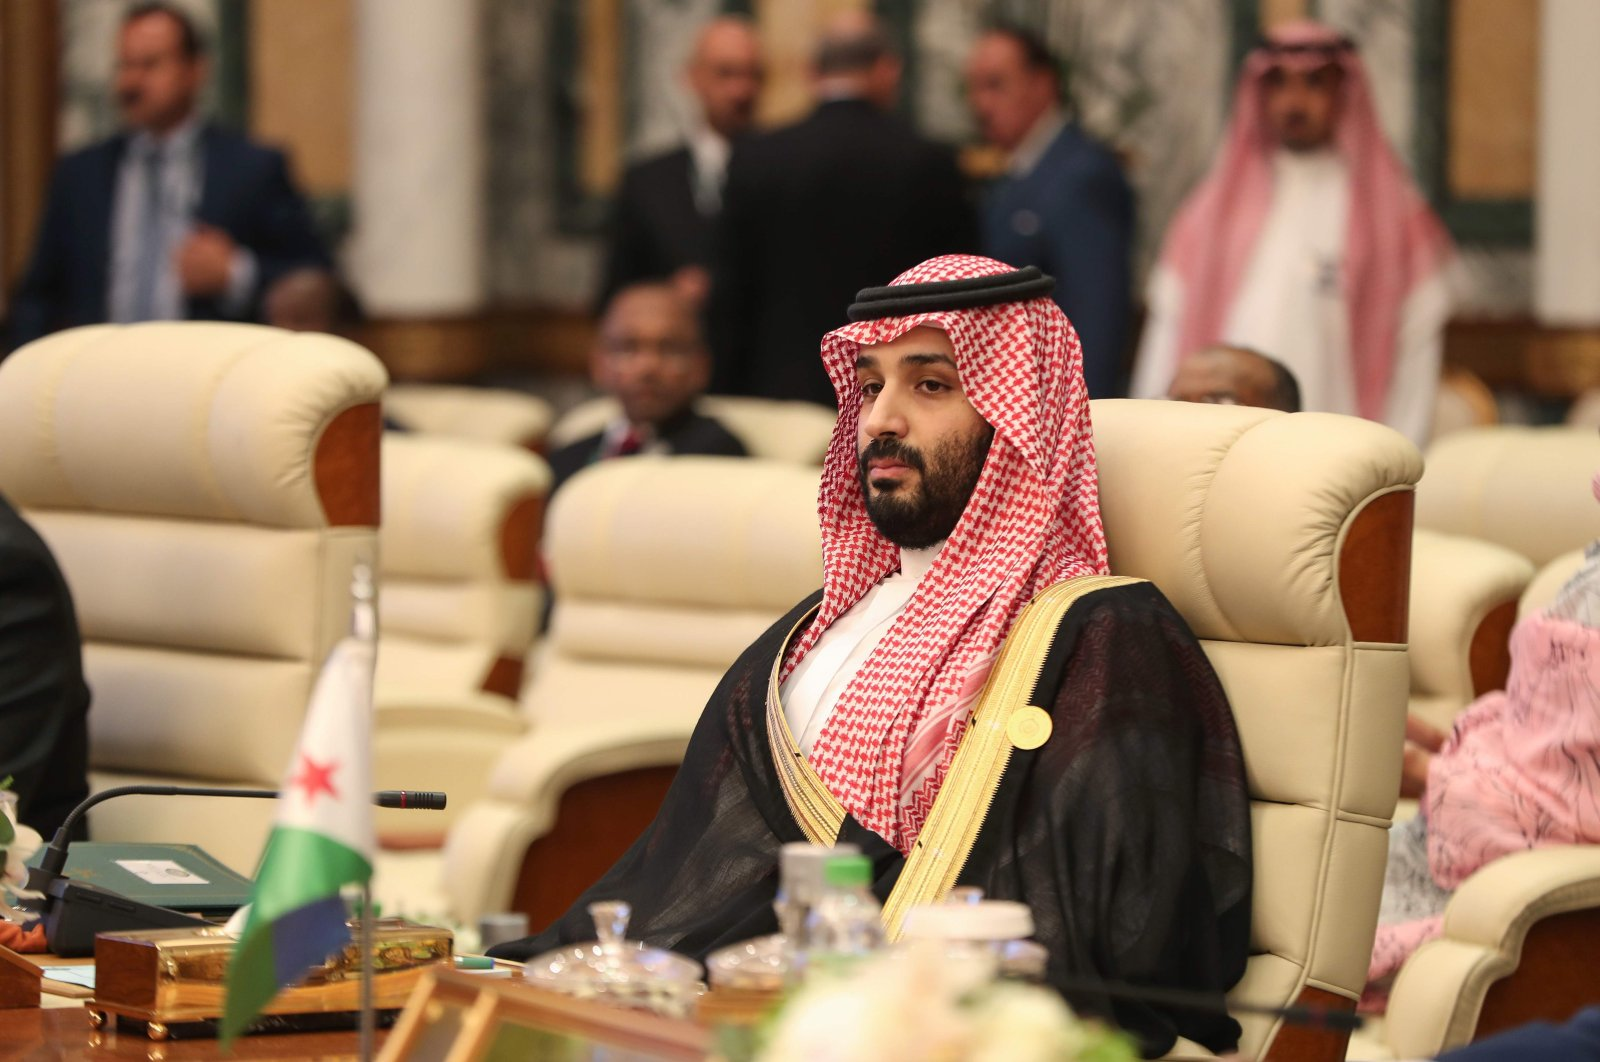 Saudi Crown Prince Mohammed bin Salman attends the extraordinary Arab summit held at al-Safa Royal Palace, Mecca, May 31, 2019. (AFP Photo)